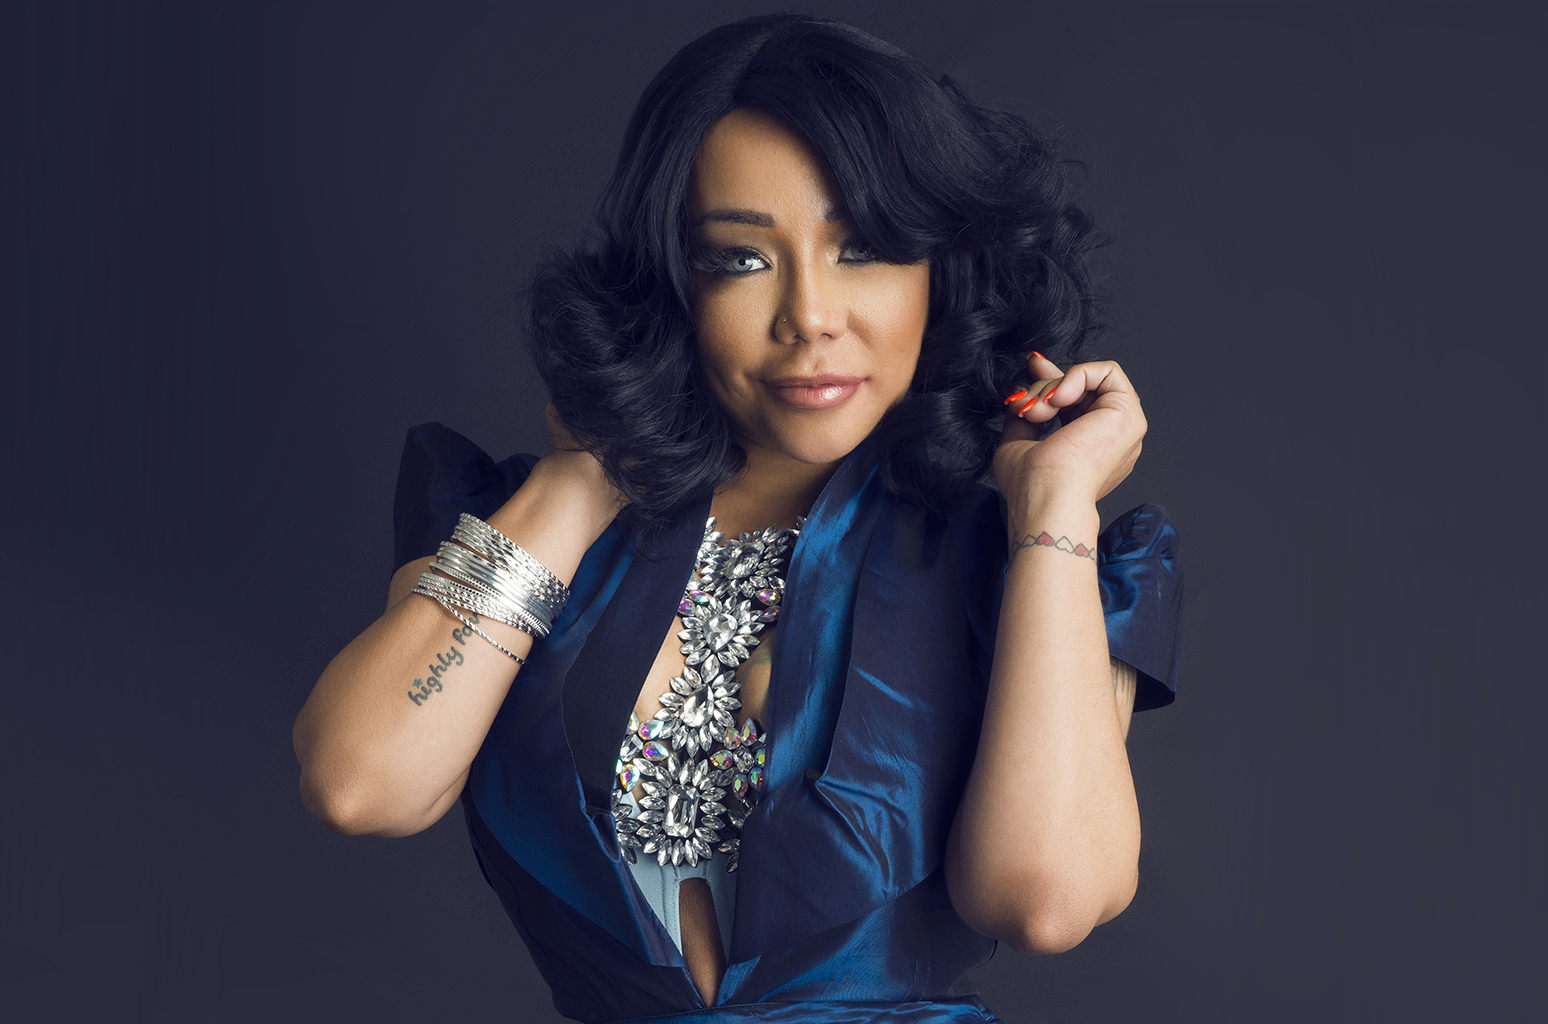 tiny-harris-refused-to-be-on-rhoa-after-getting-an-offer-heres-why